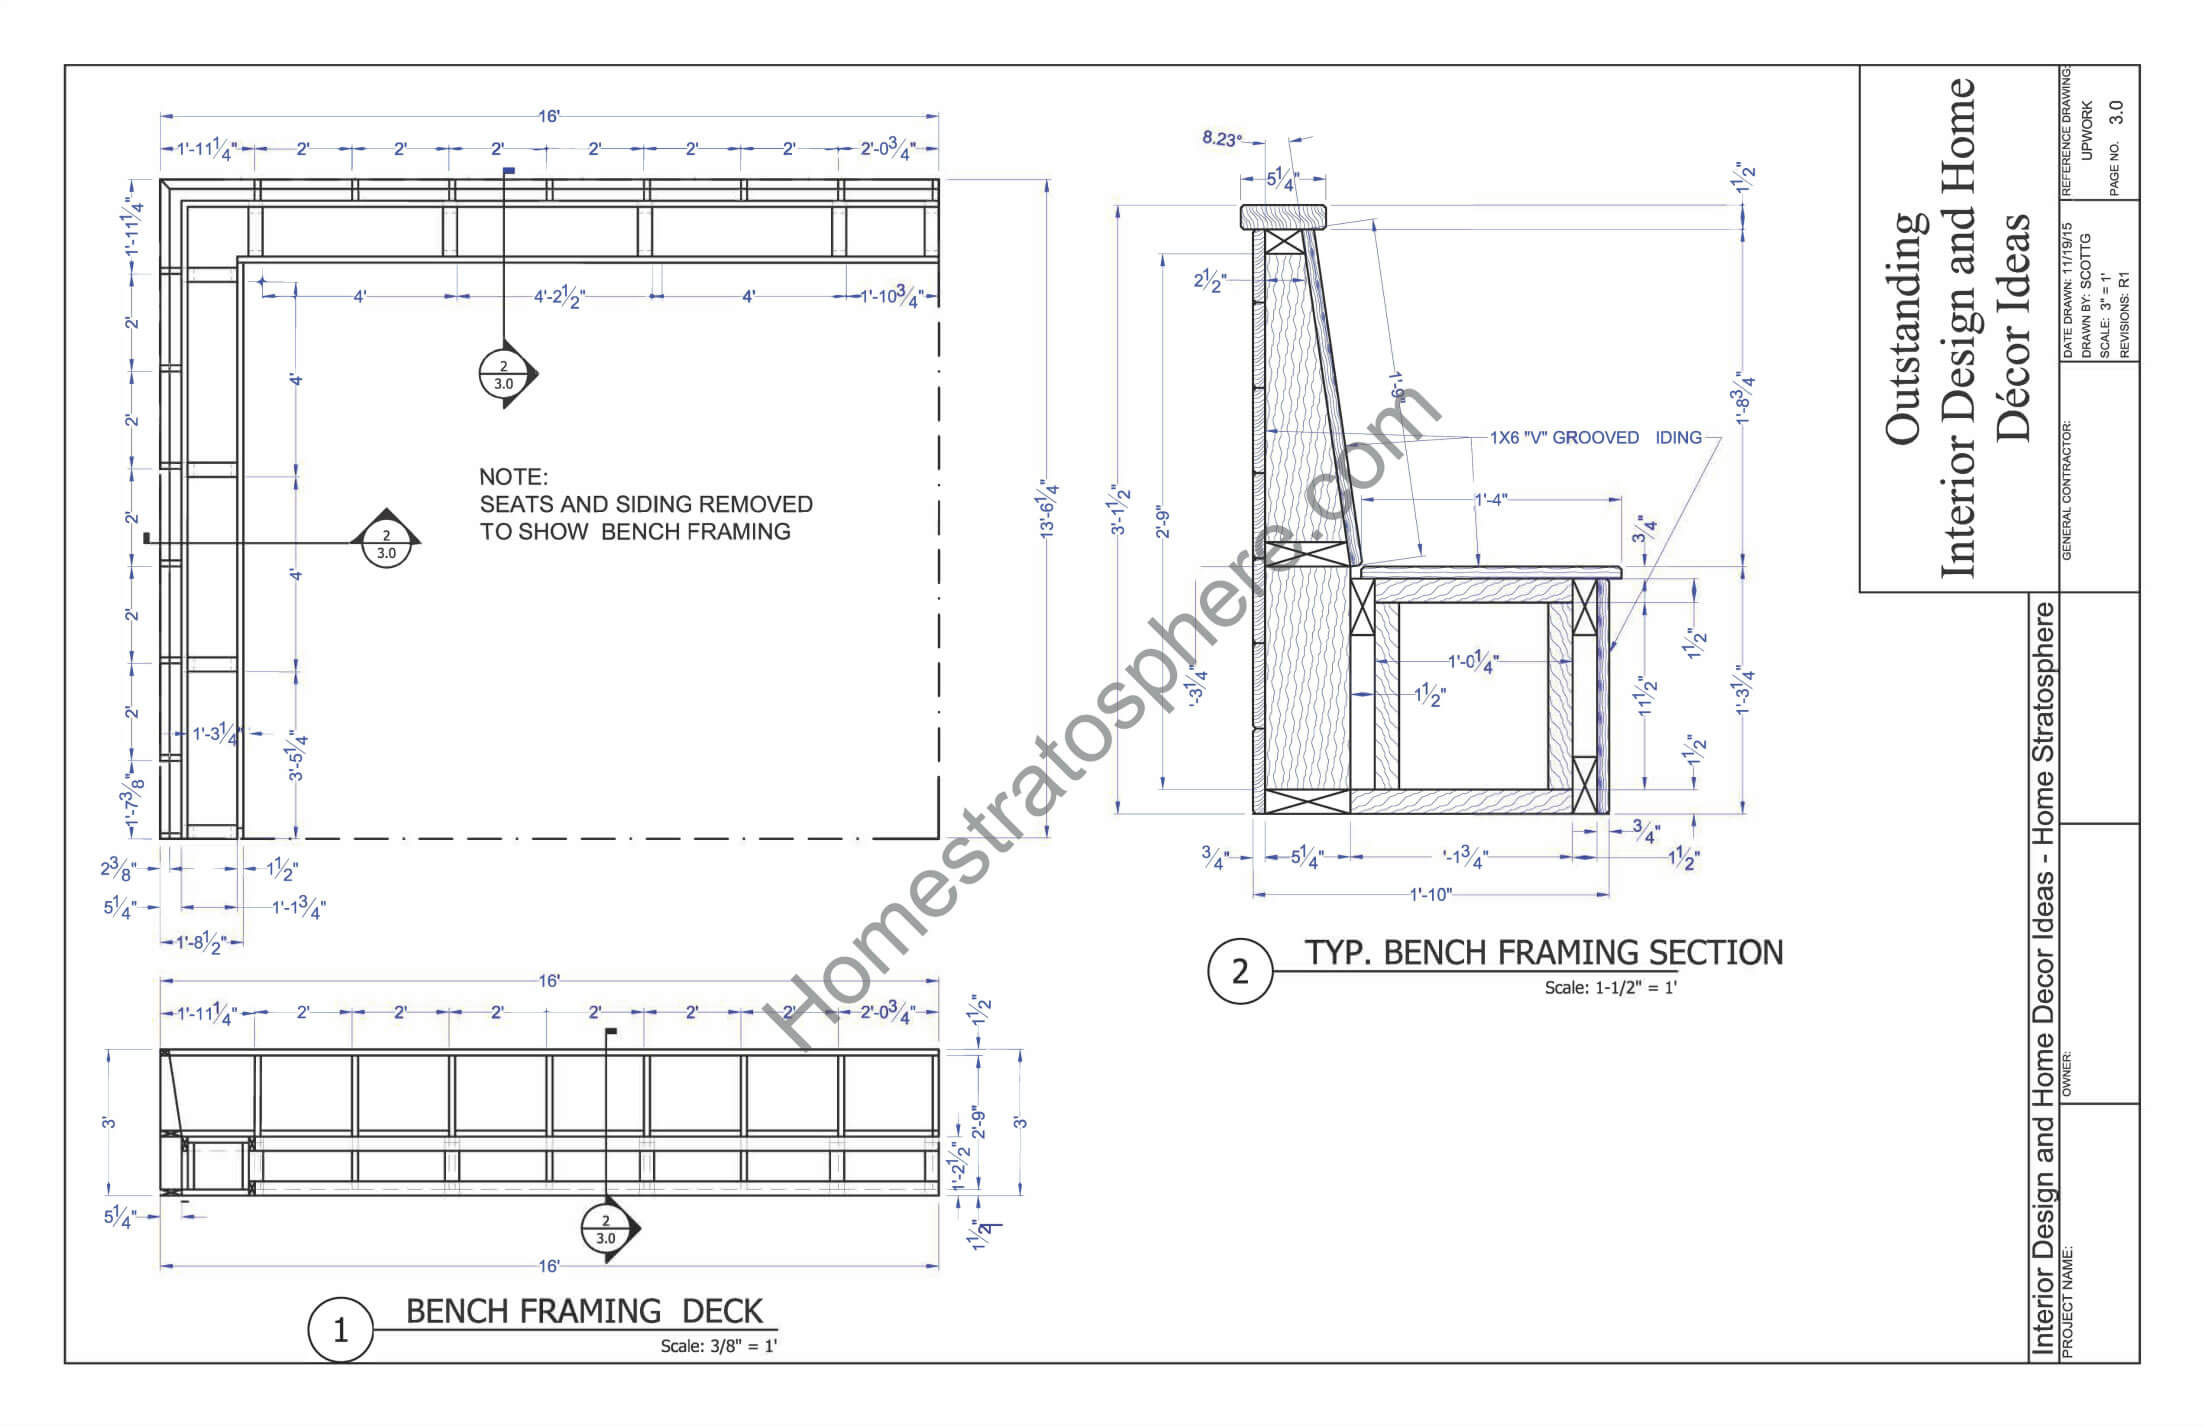 Deck plan with built in benches for seating and storage bench framing for deck built in benches baanklon Images